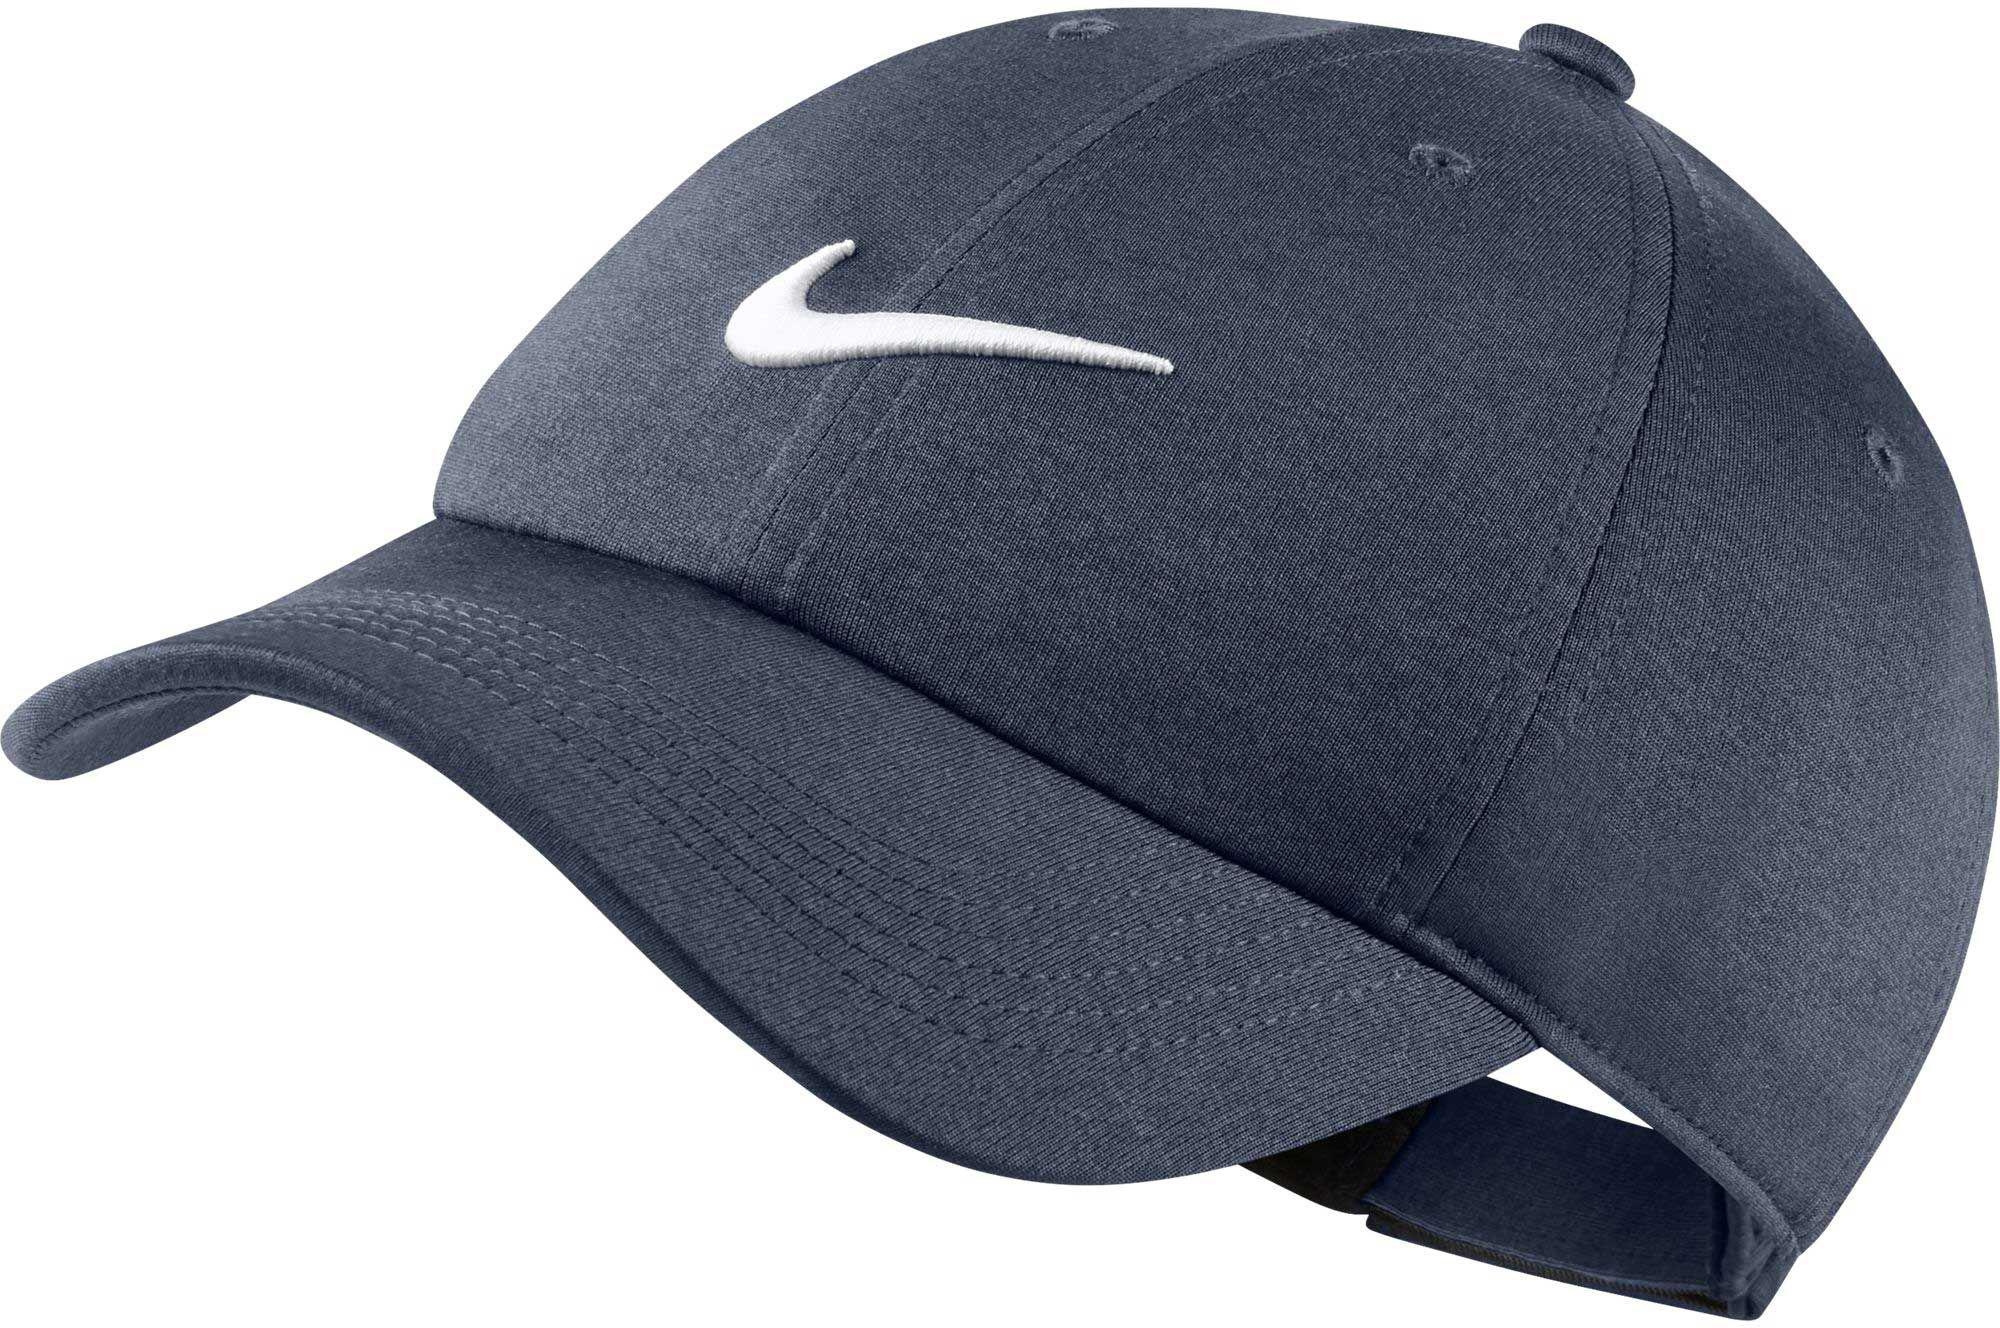 b47080e2f5cb3 Nike Aerobill Heritage86 Adjustable Hat in Blue for Men - Lyst